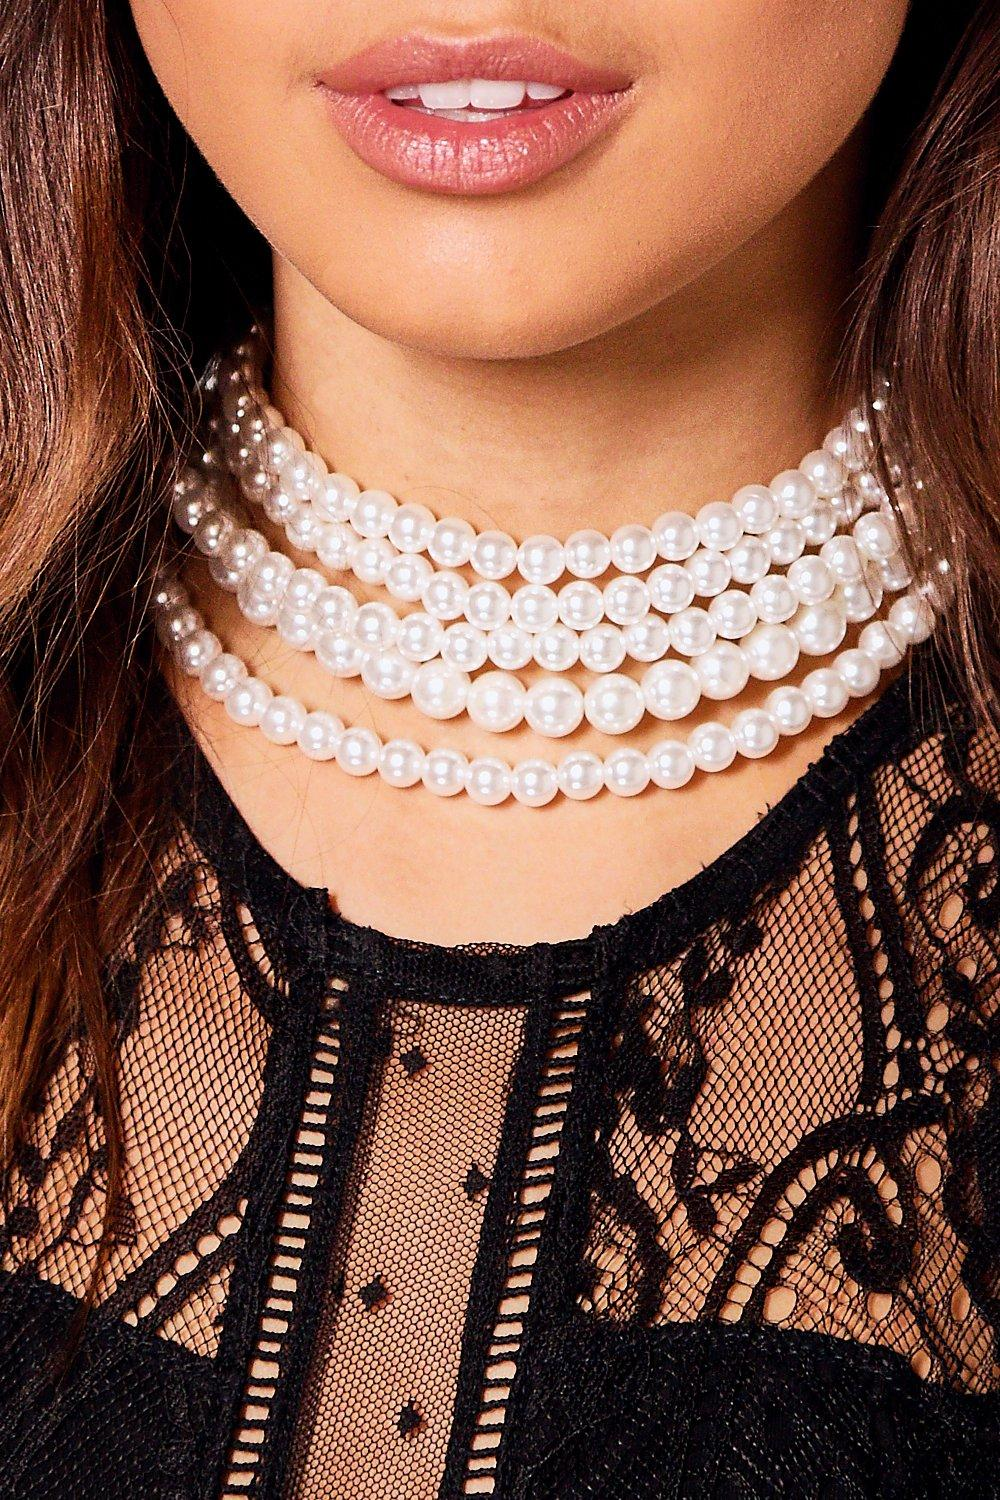 Anna Pearl Choker With Long Pearl Necklace